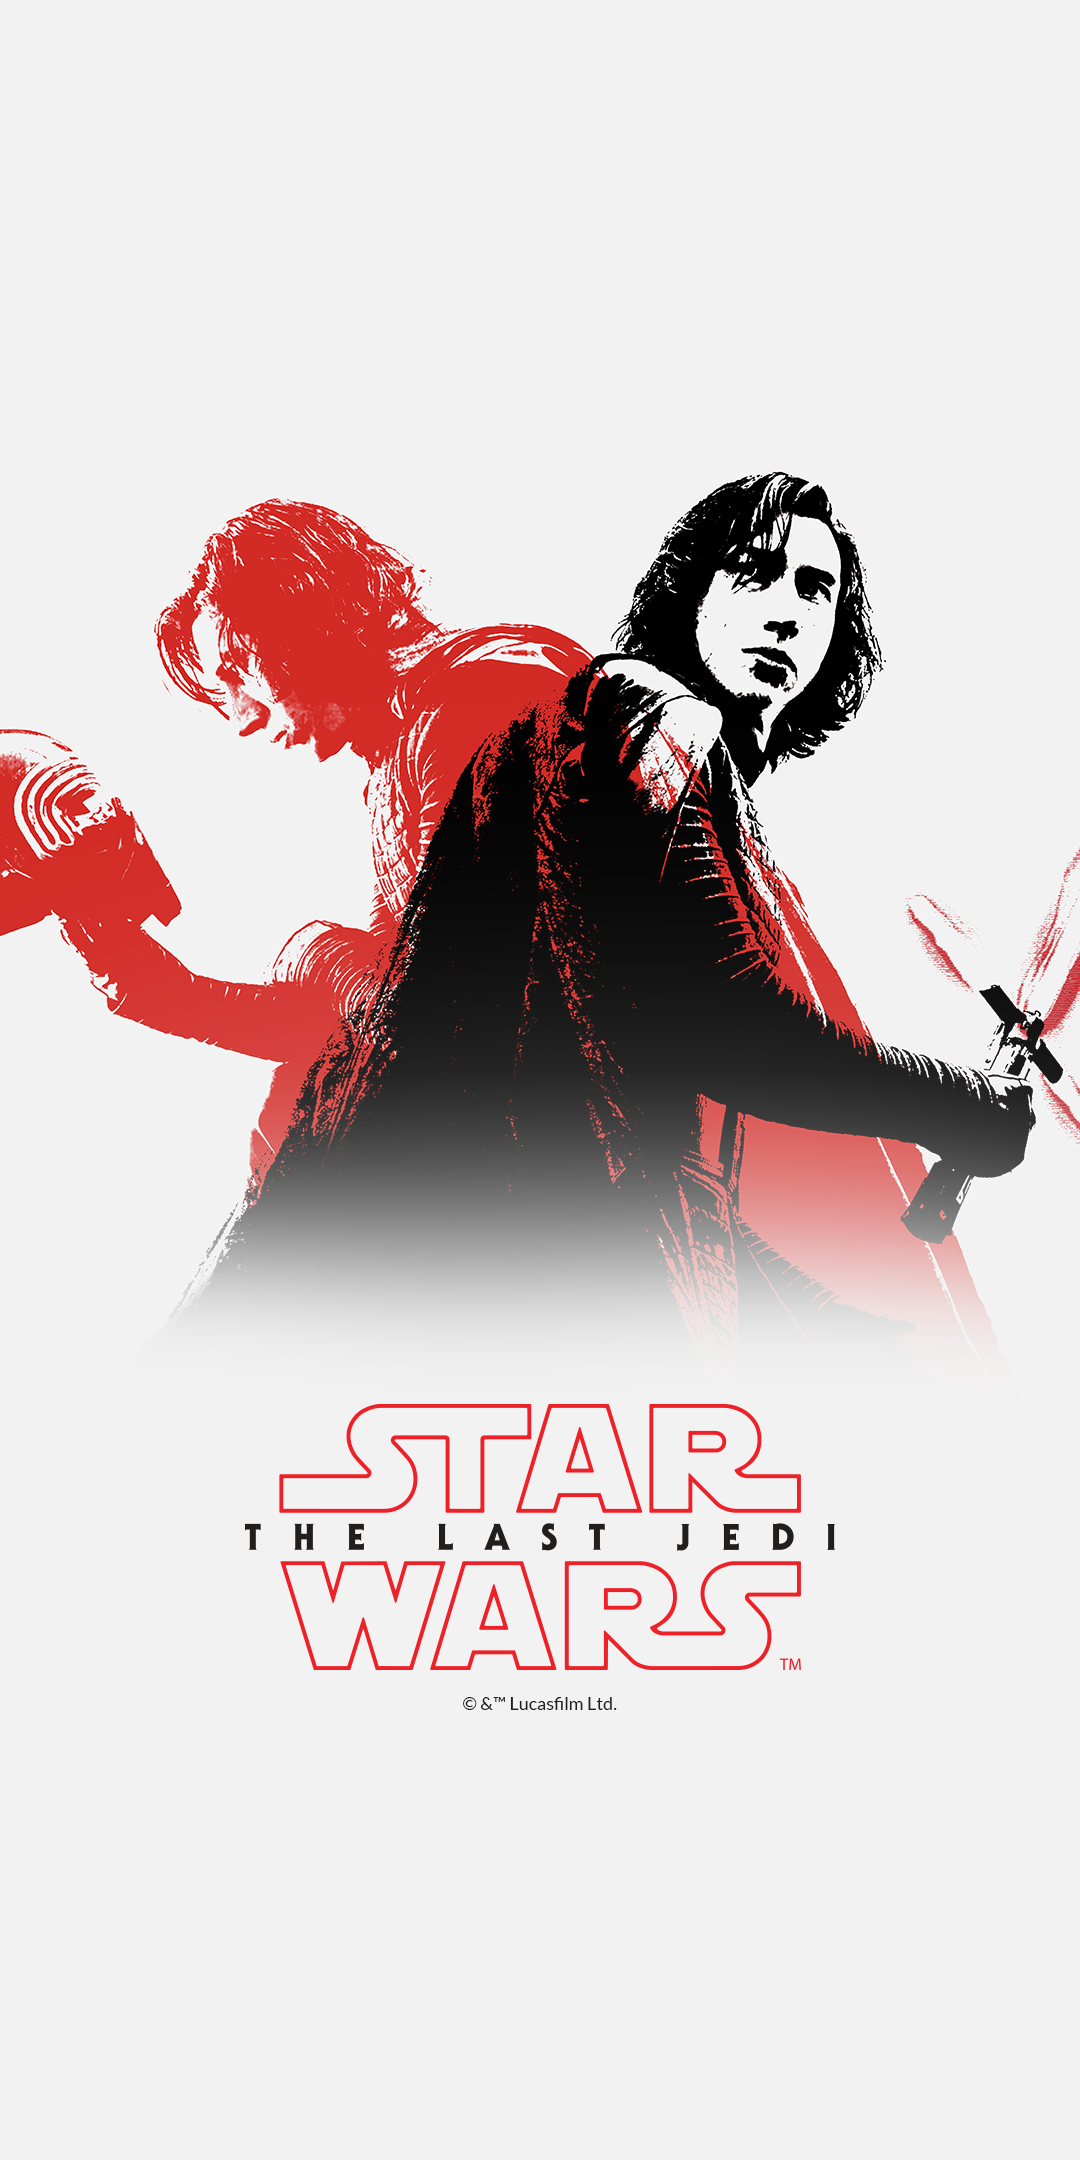 Get All The Star Wars The Last Jedi Wallpapers From The Special Edition Oneplus 5t Download Star Wars Background Star Wars Wallpaper Star Wars Quotes